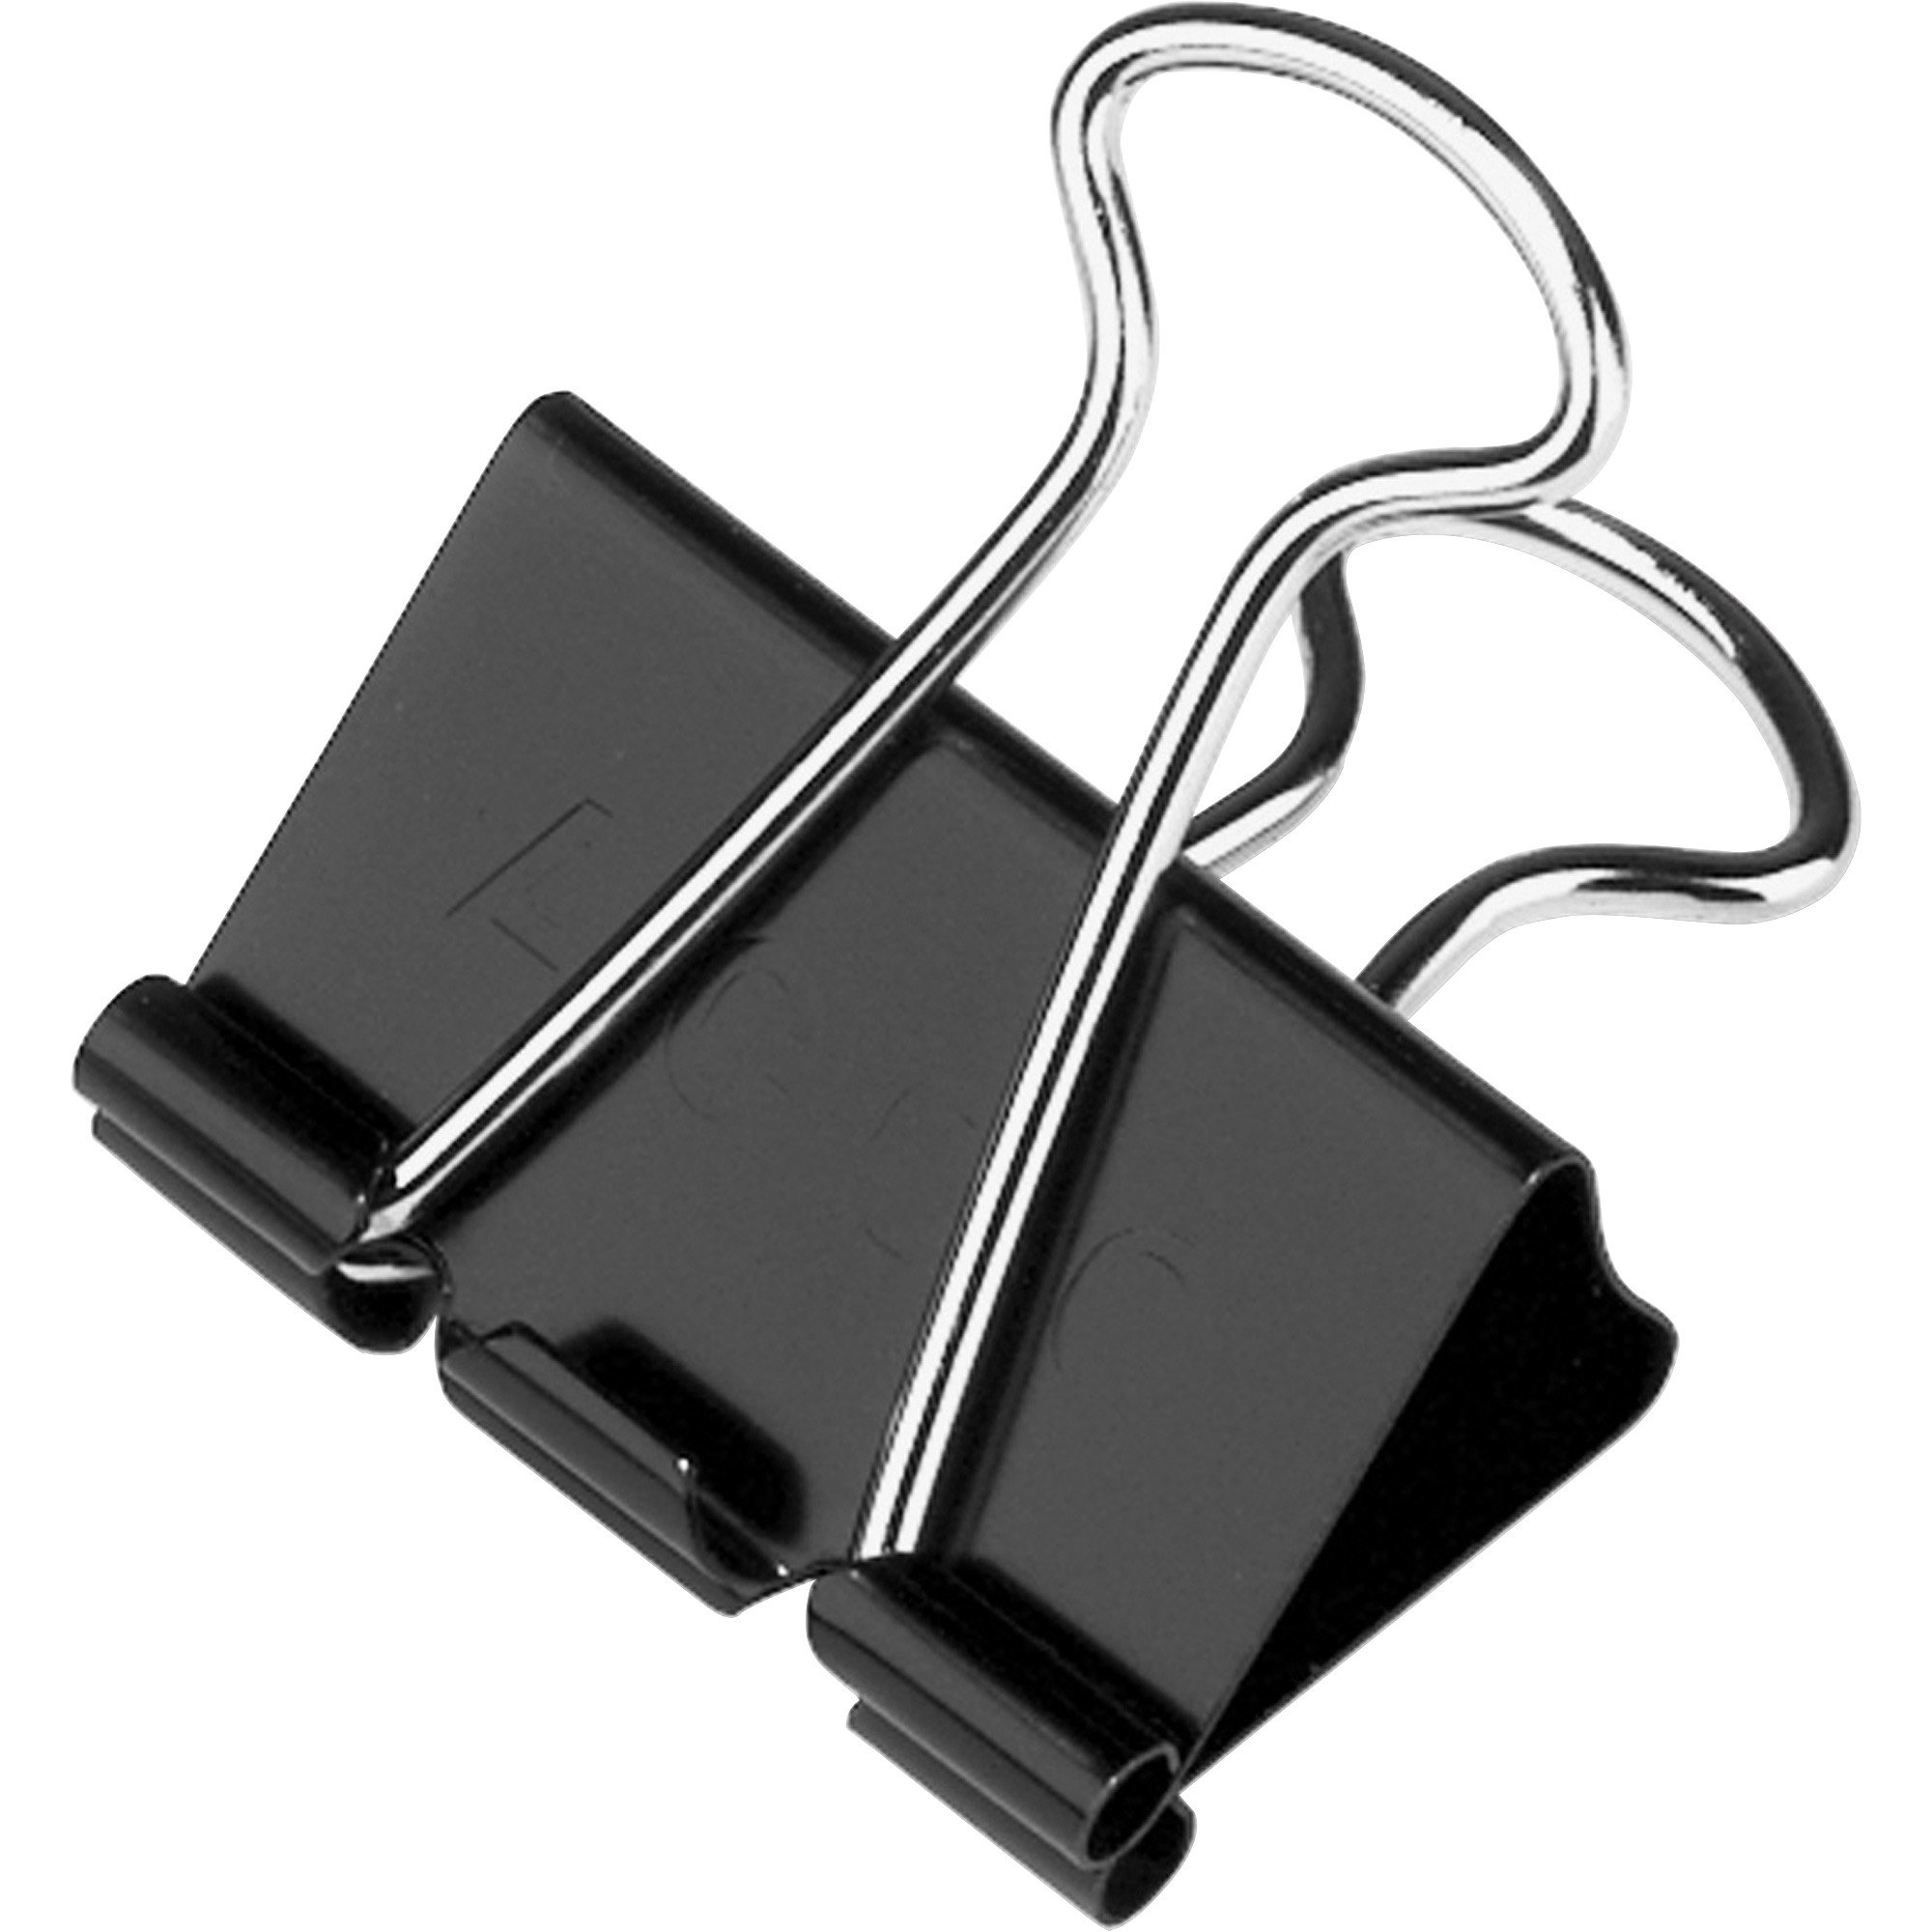 A black and silver binder clip